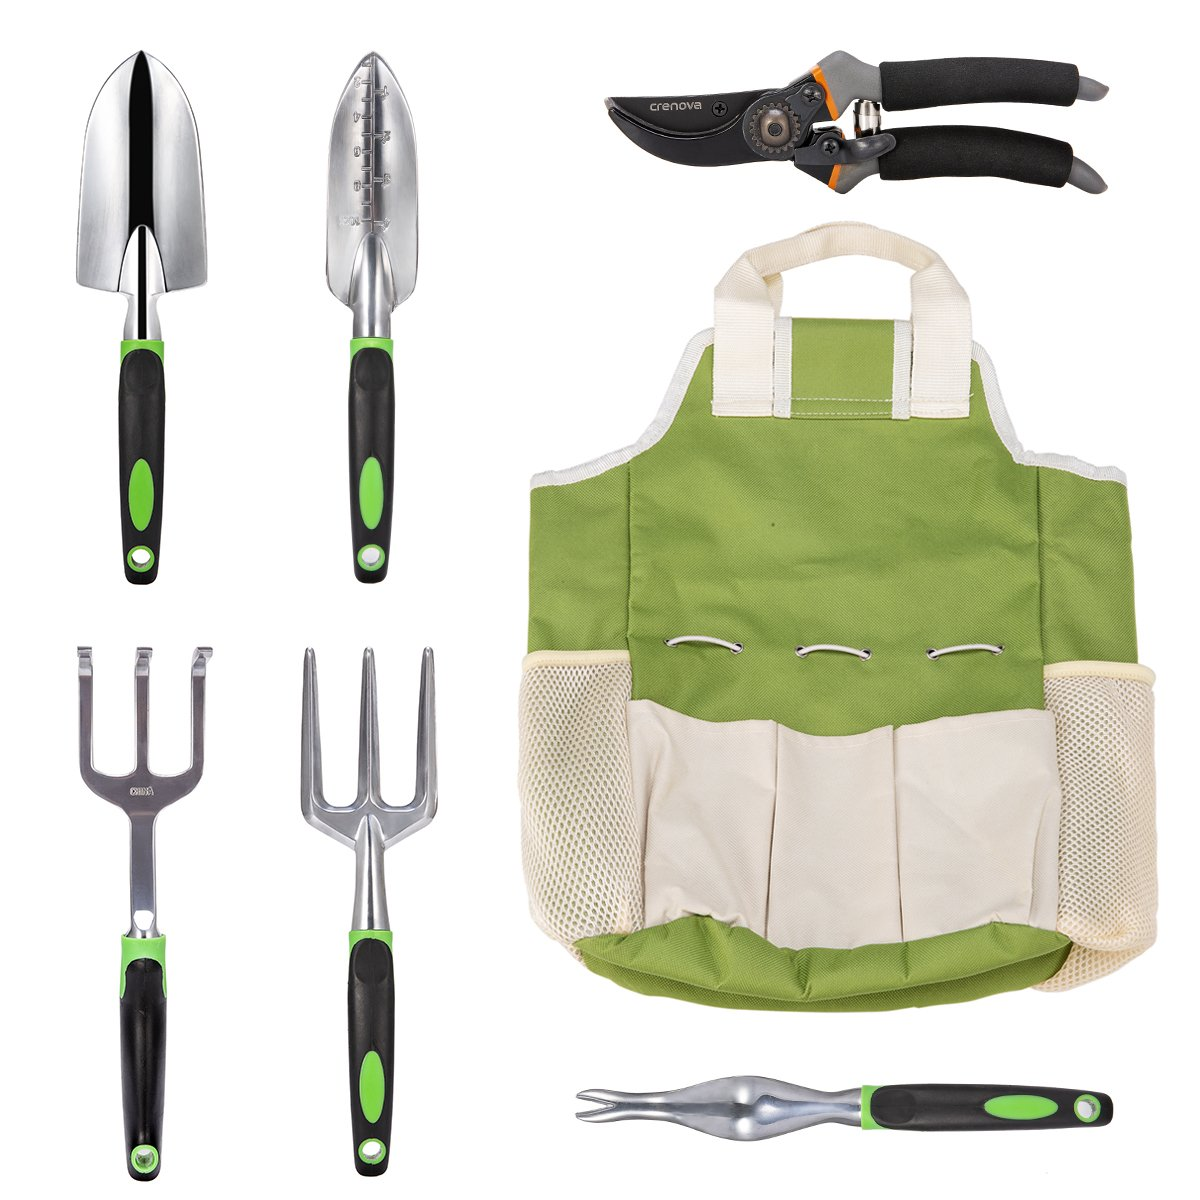 Crenova 7 Piece Garden Tools Set, Stainless Steel Heavy Duty Gardening Kit with Soft Rubberized Non-Slip Handle, Durable Storage Tote Bag and Pruning Shears, Best Garden Gift for Women & Men